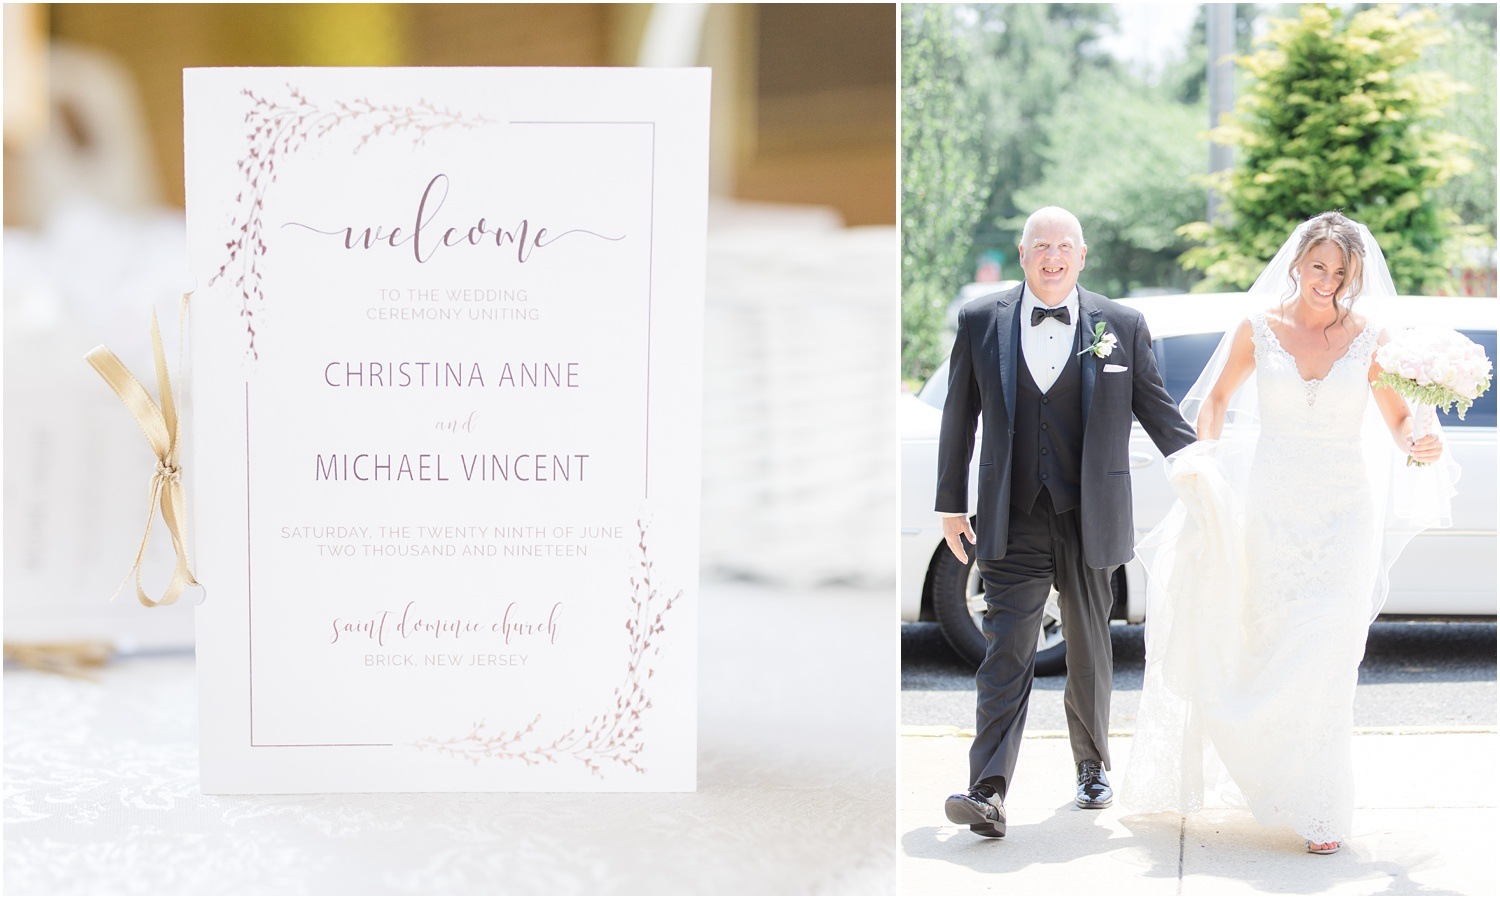 Wedding program and dad helping bride out of the limo at her wedding ceremony.